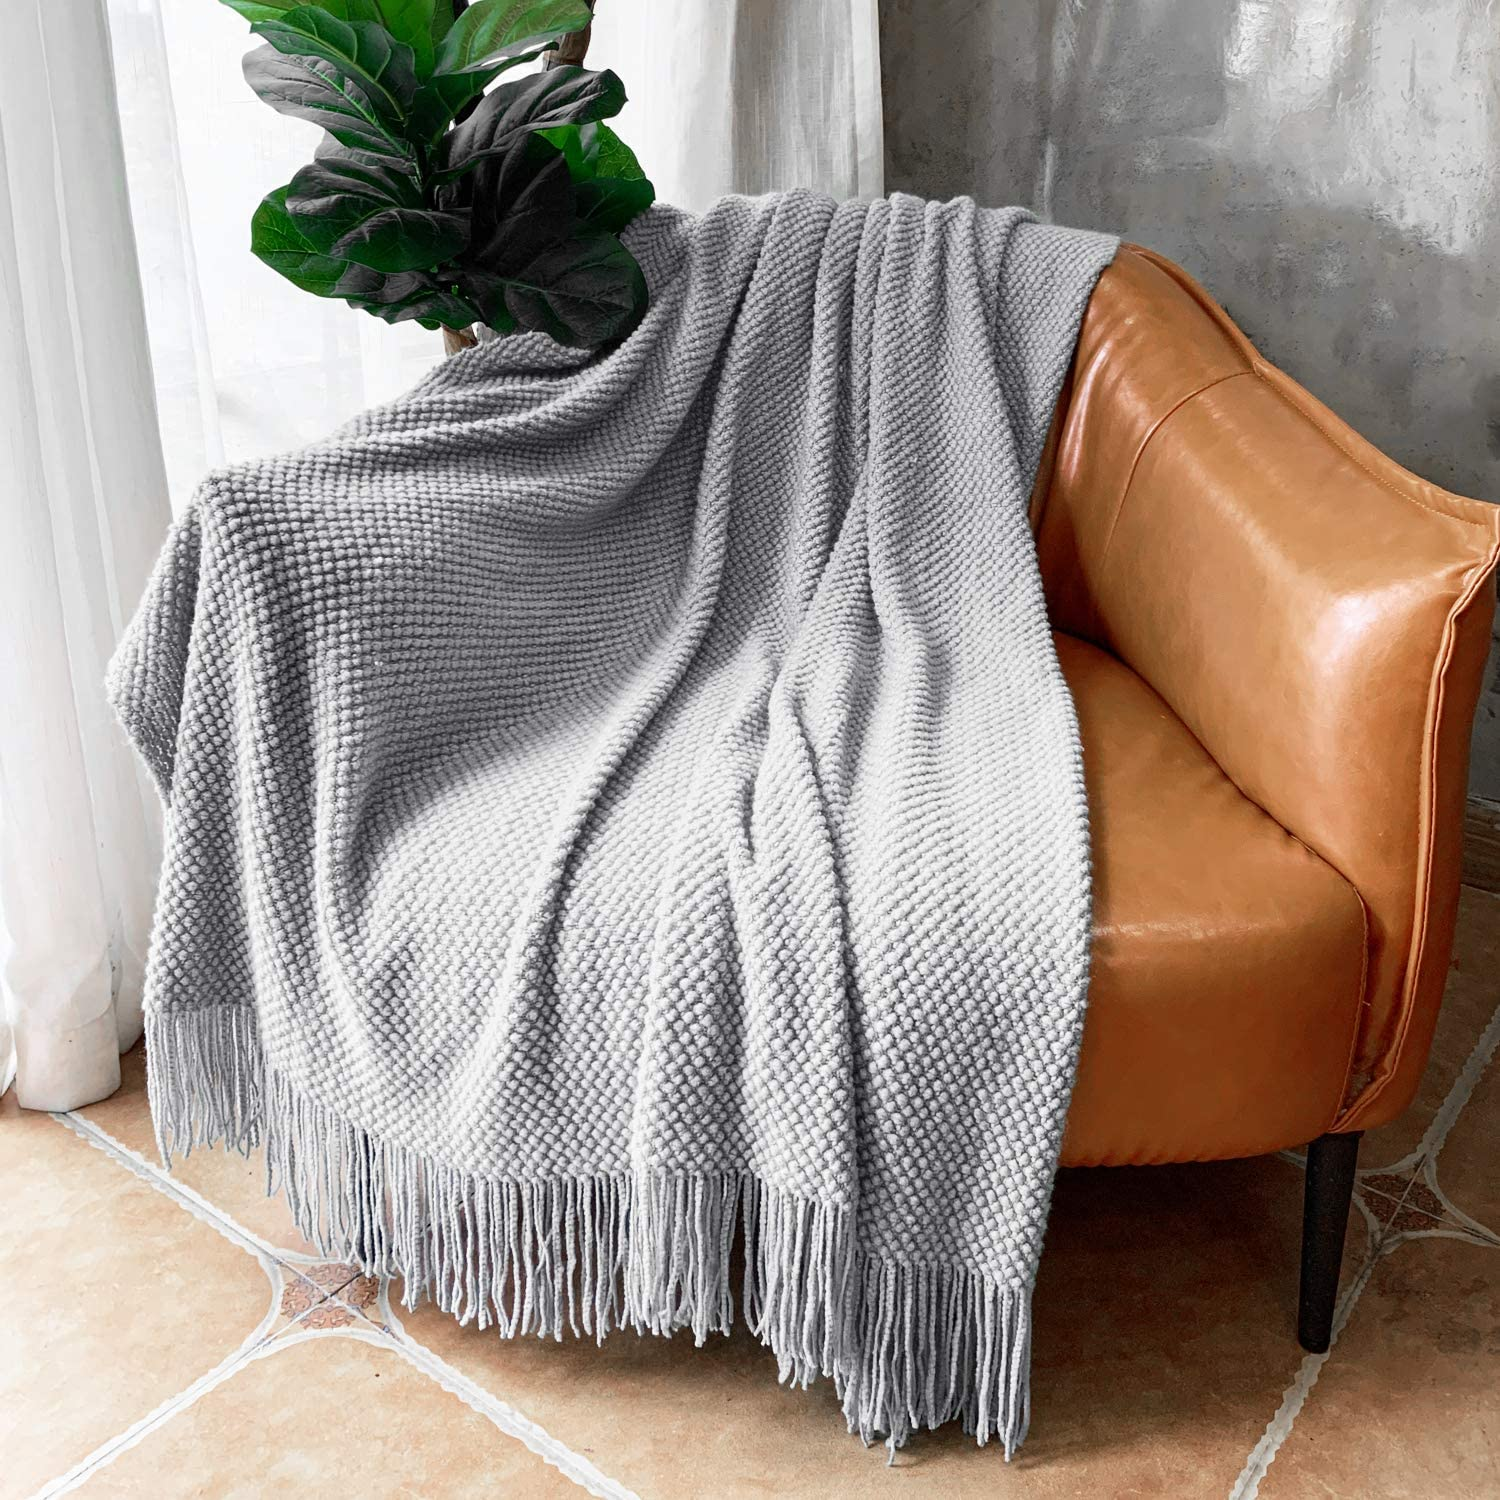 LOMAO Knitted Throw Blanket with Tassels Bubble Textured Soft Lightweight Throws for Couch Cover Home Decor (Light Grey, 50x60)